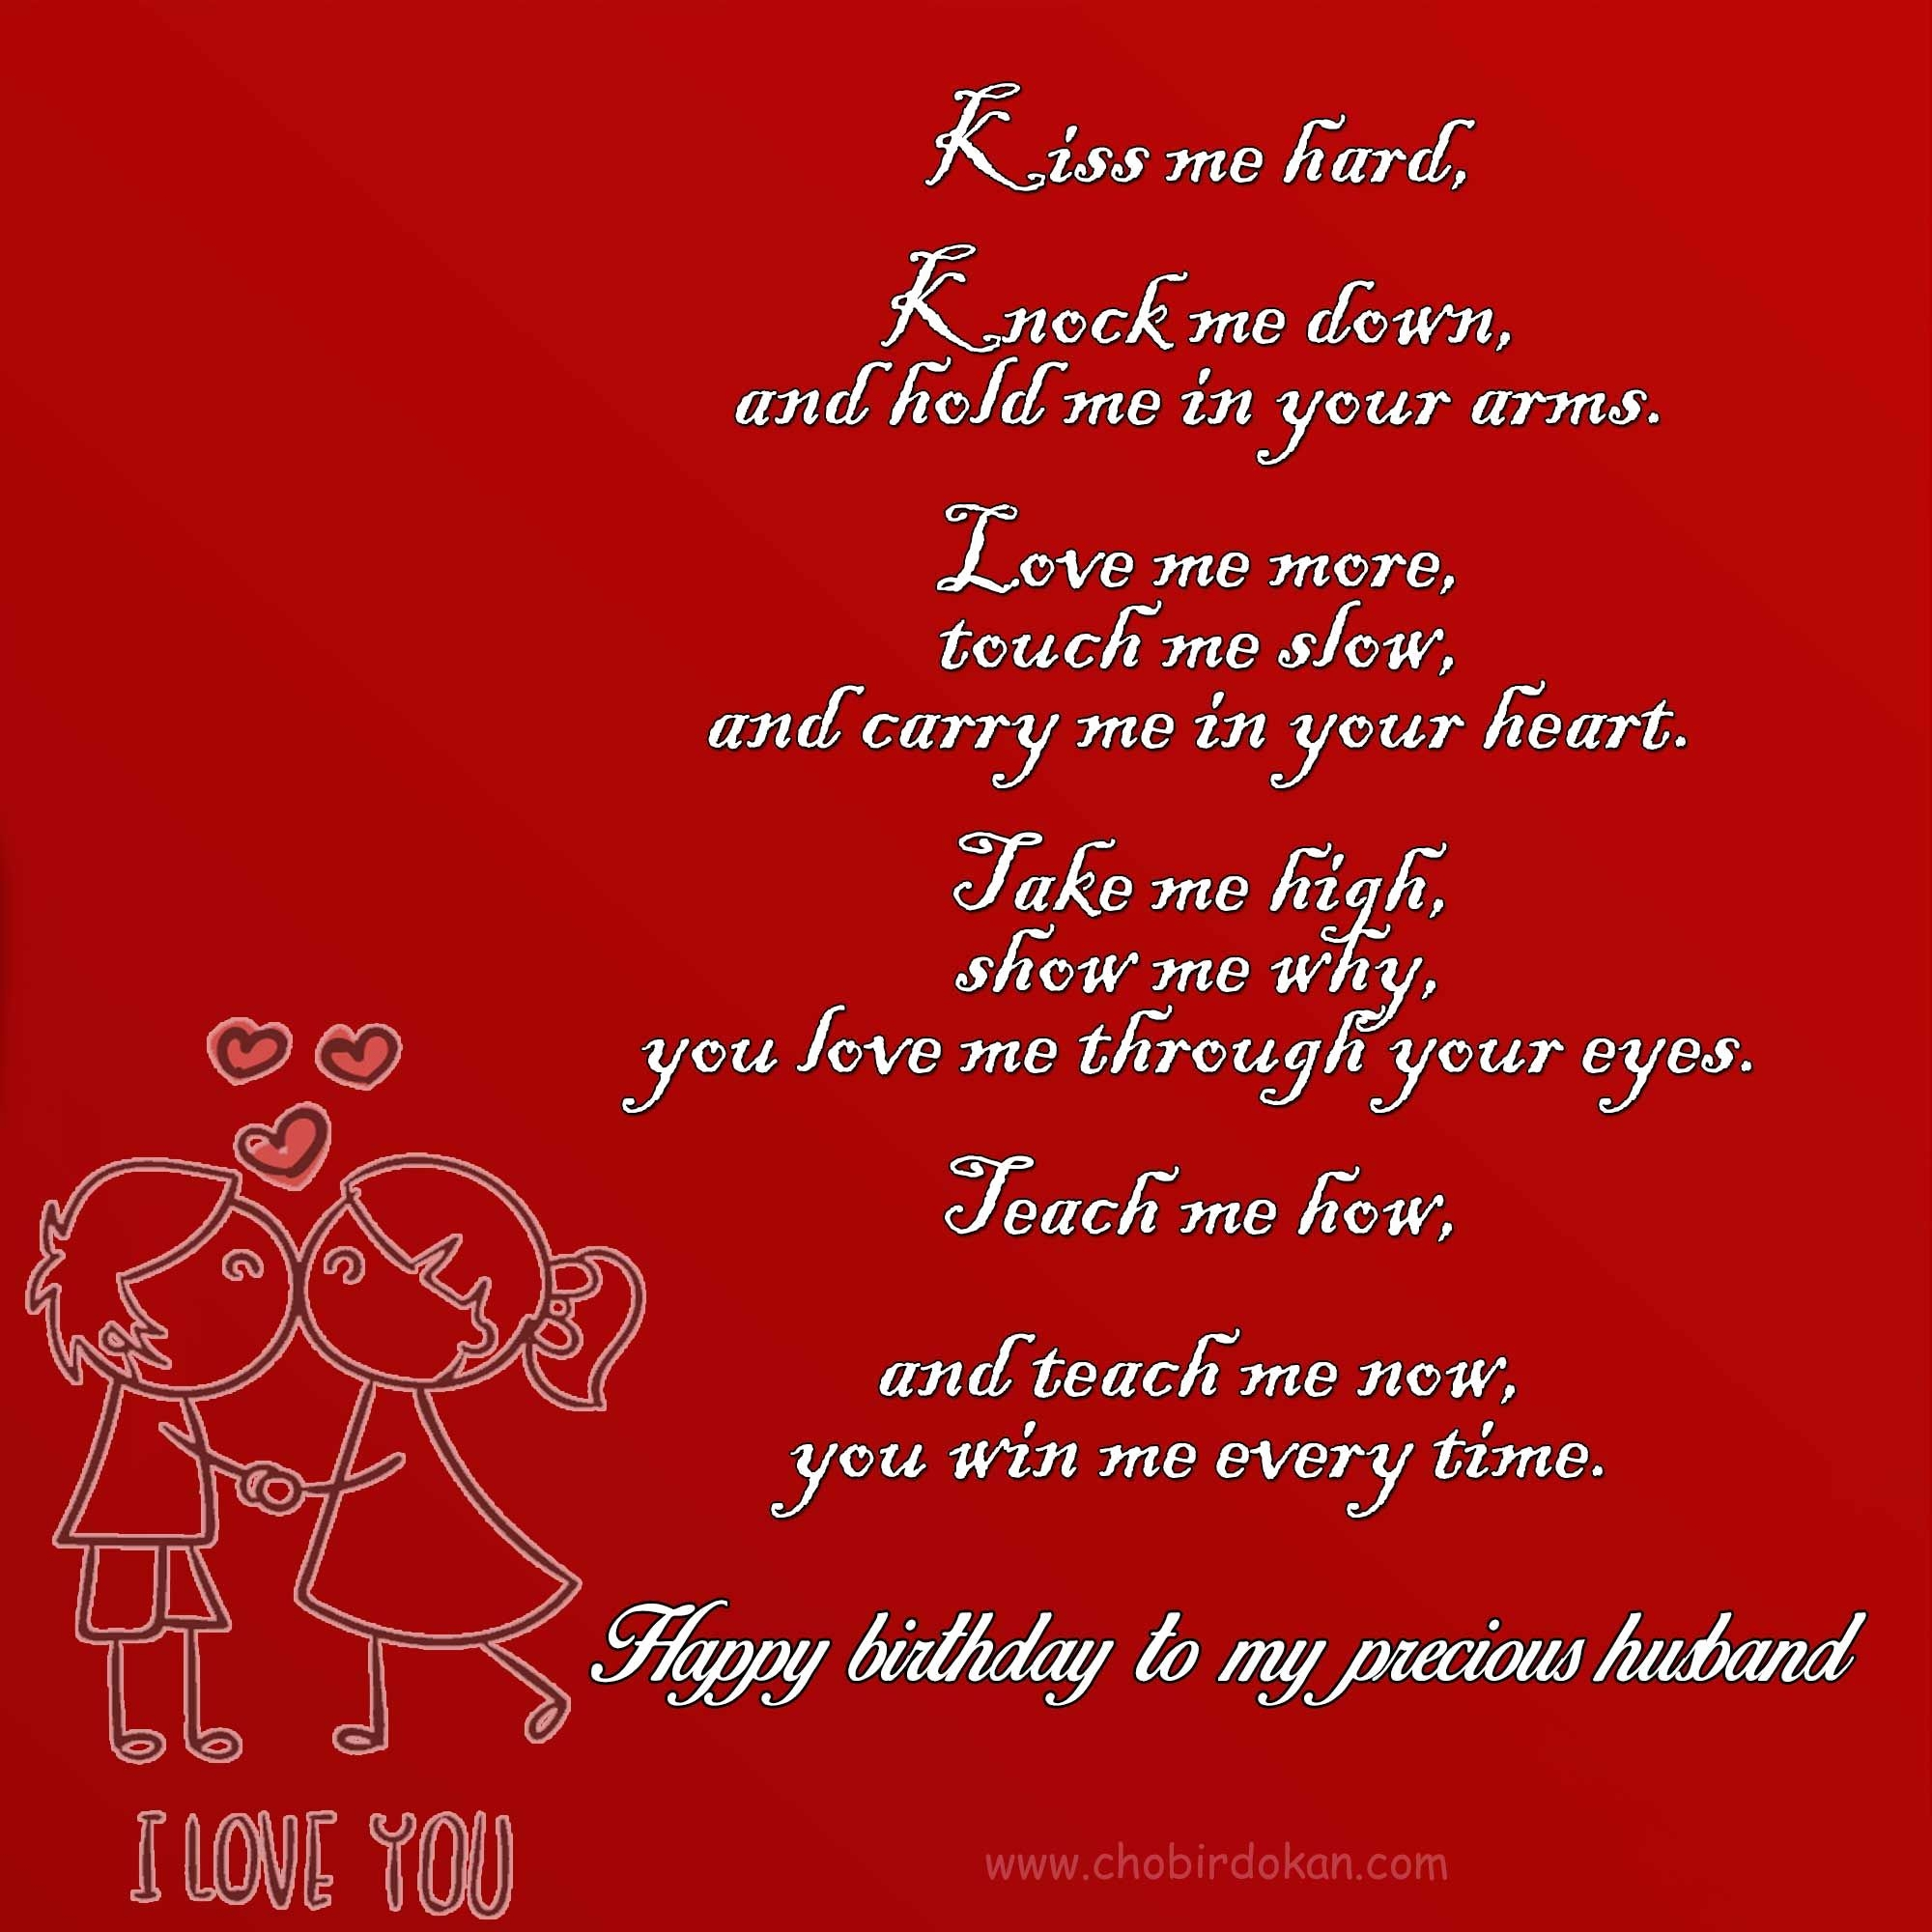 birthday poem for my brother ; birthday-wishes-for-a-brother-inspirational-happy-birthday-poems-for-him-of-birthday-wishes-for-a-brother